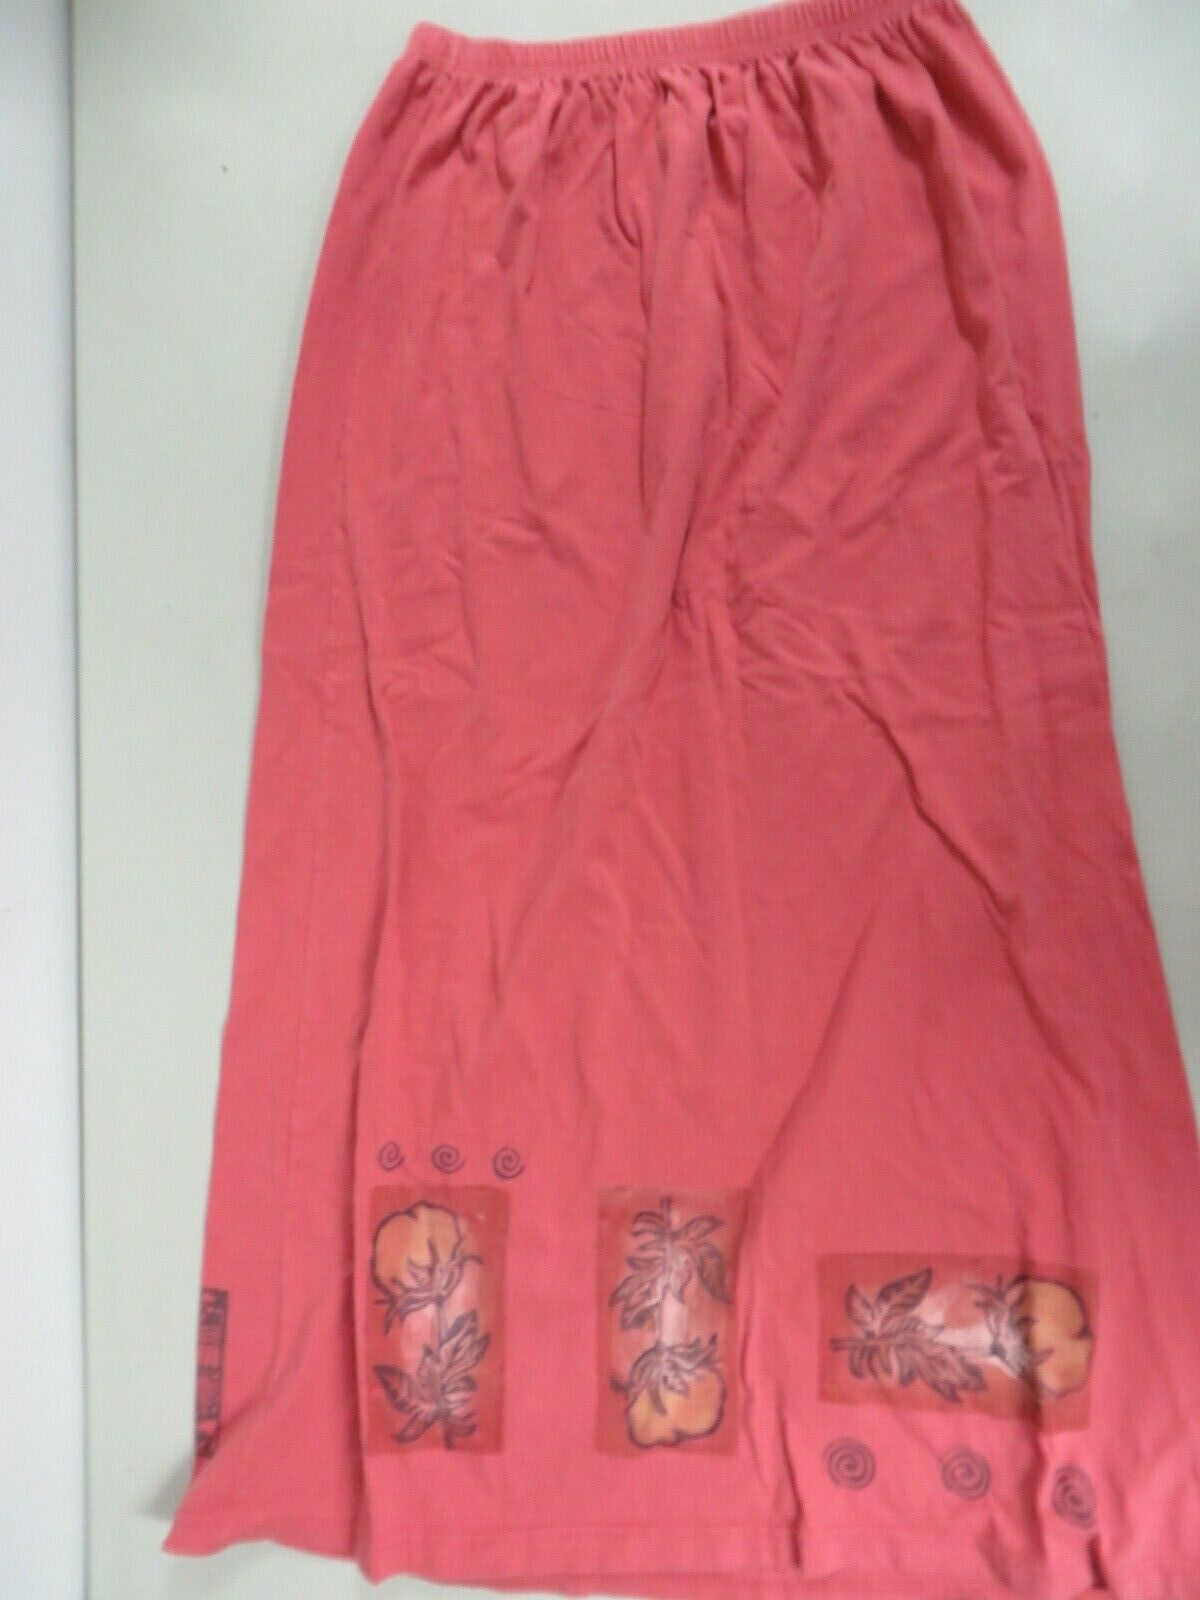 eaa9b0b9c9 bluee Fish Cotton Stretch Maxi Long Floral painted Skirt Pull-on Tangerine  Size 1